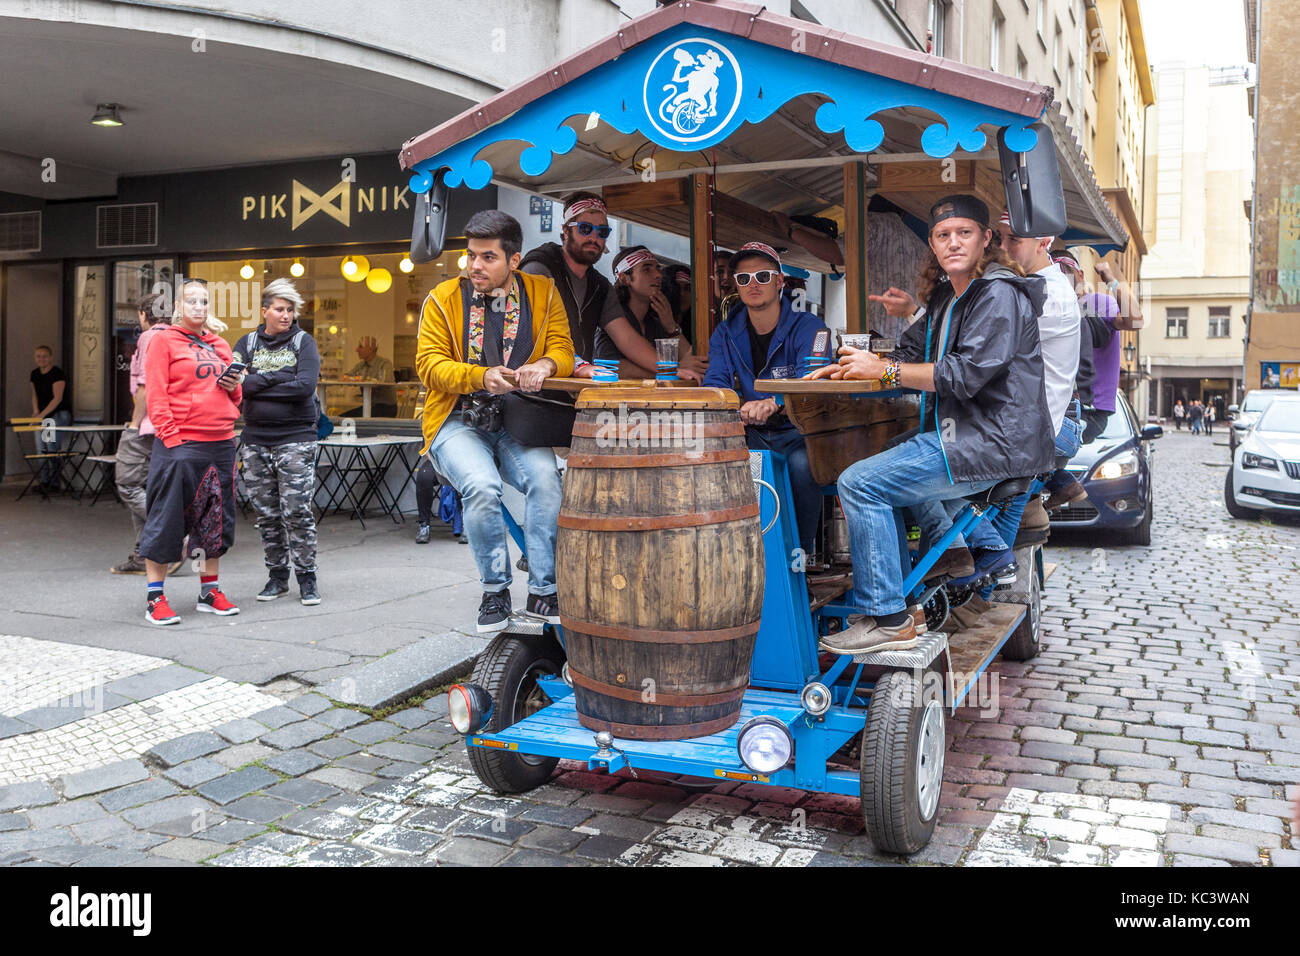 Mobile bar for tourists in the streets of Old Town, Prague, Czech Republic - Stock Image